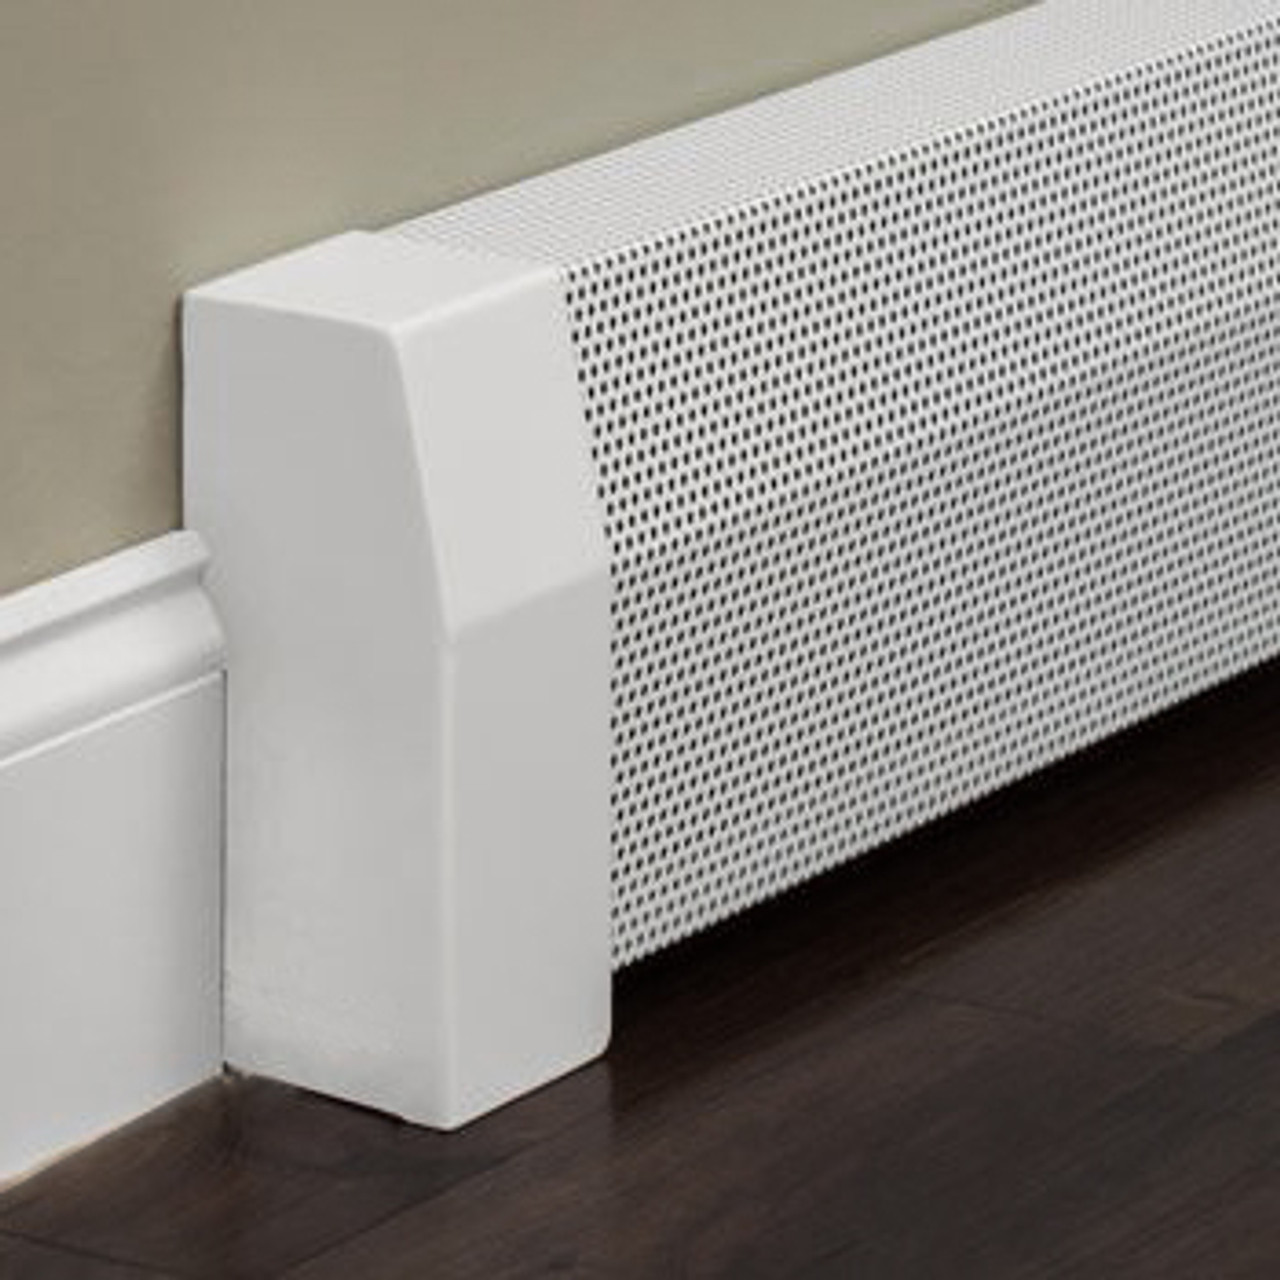 Bench Seat Cover Baseboard Heater